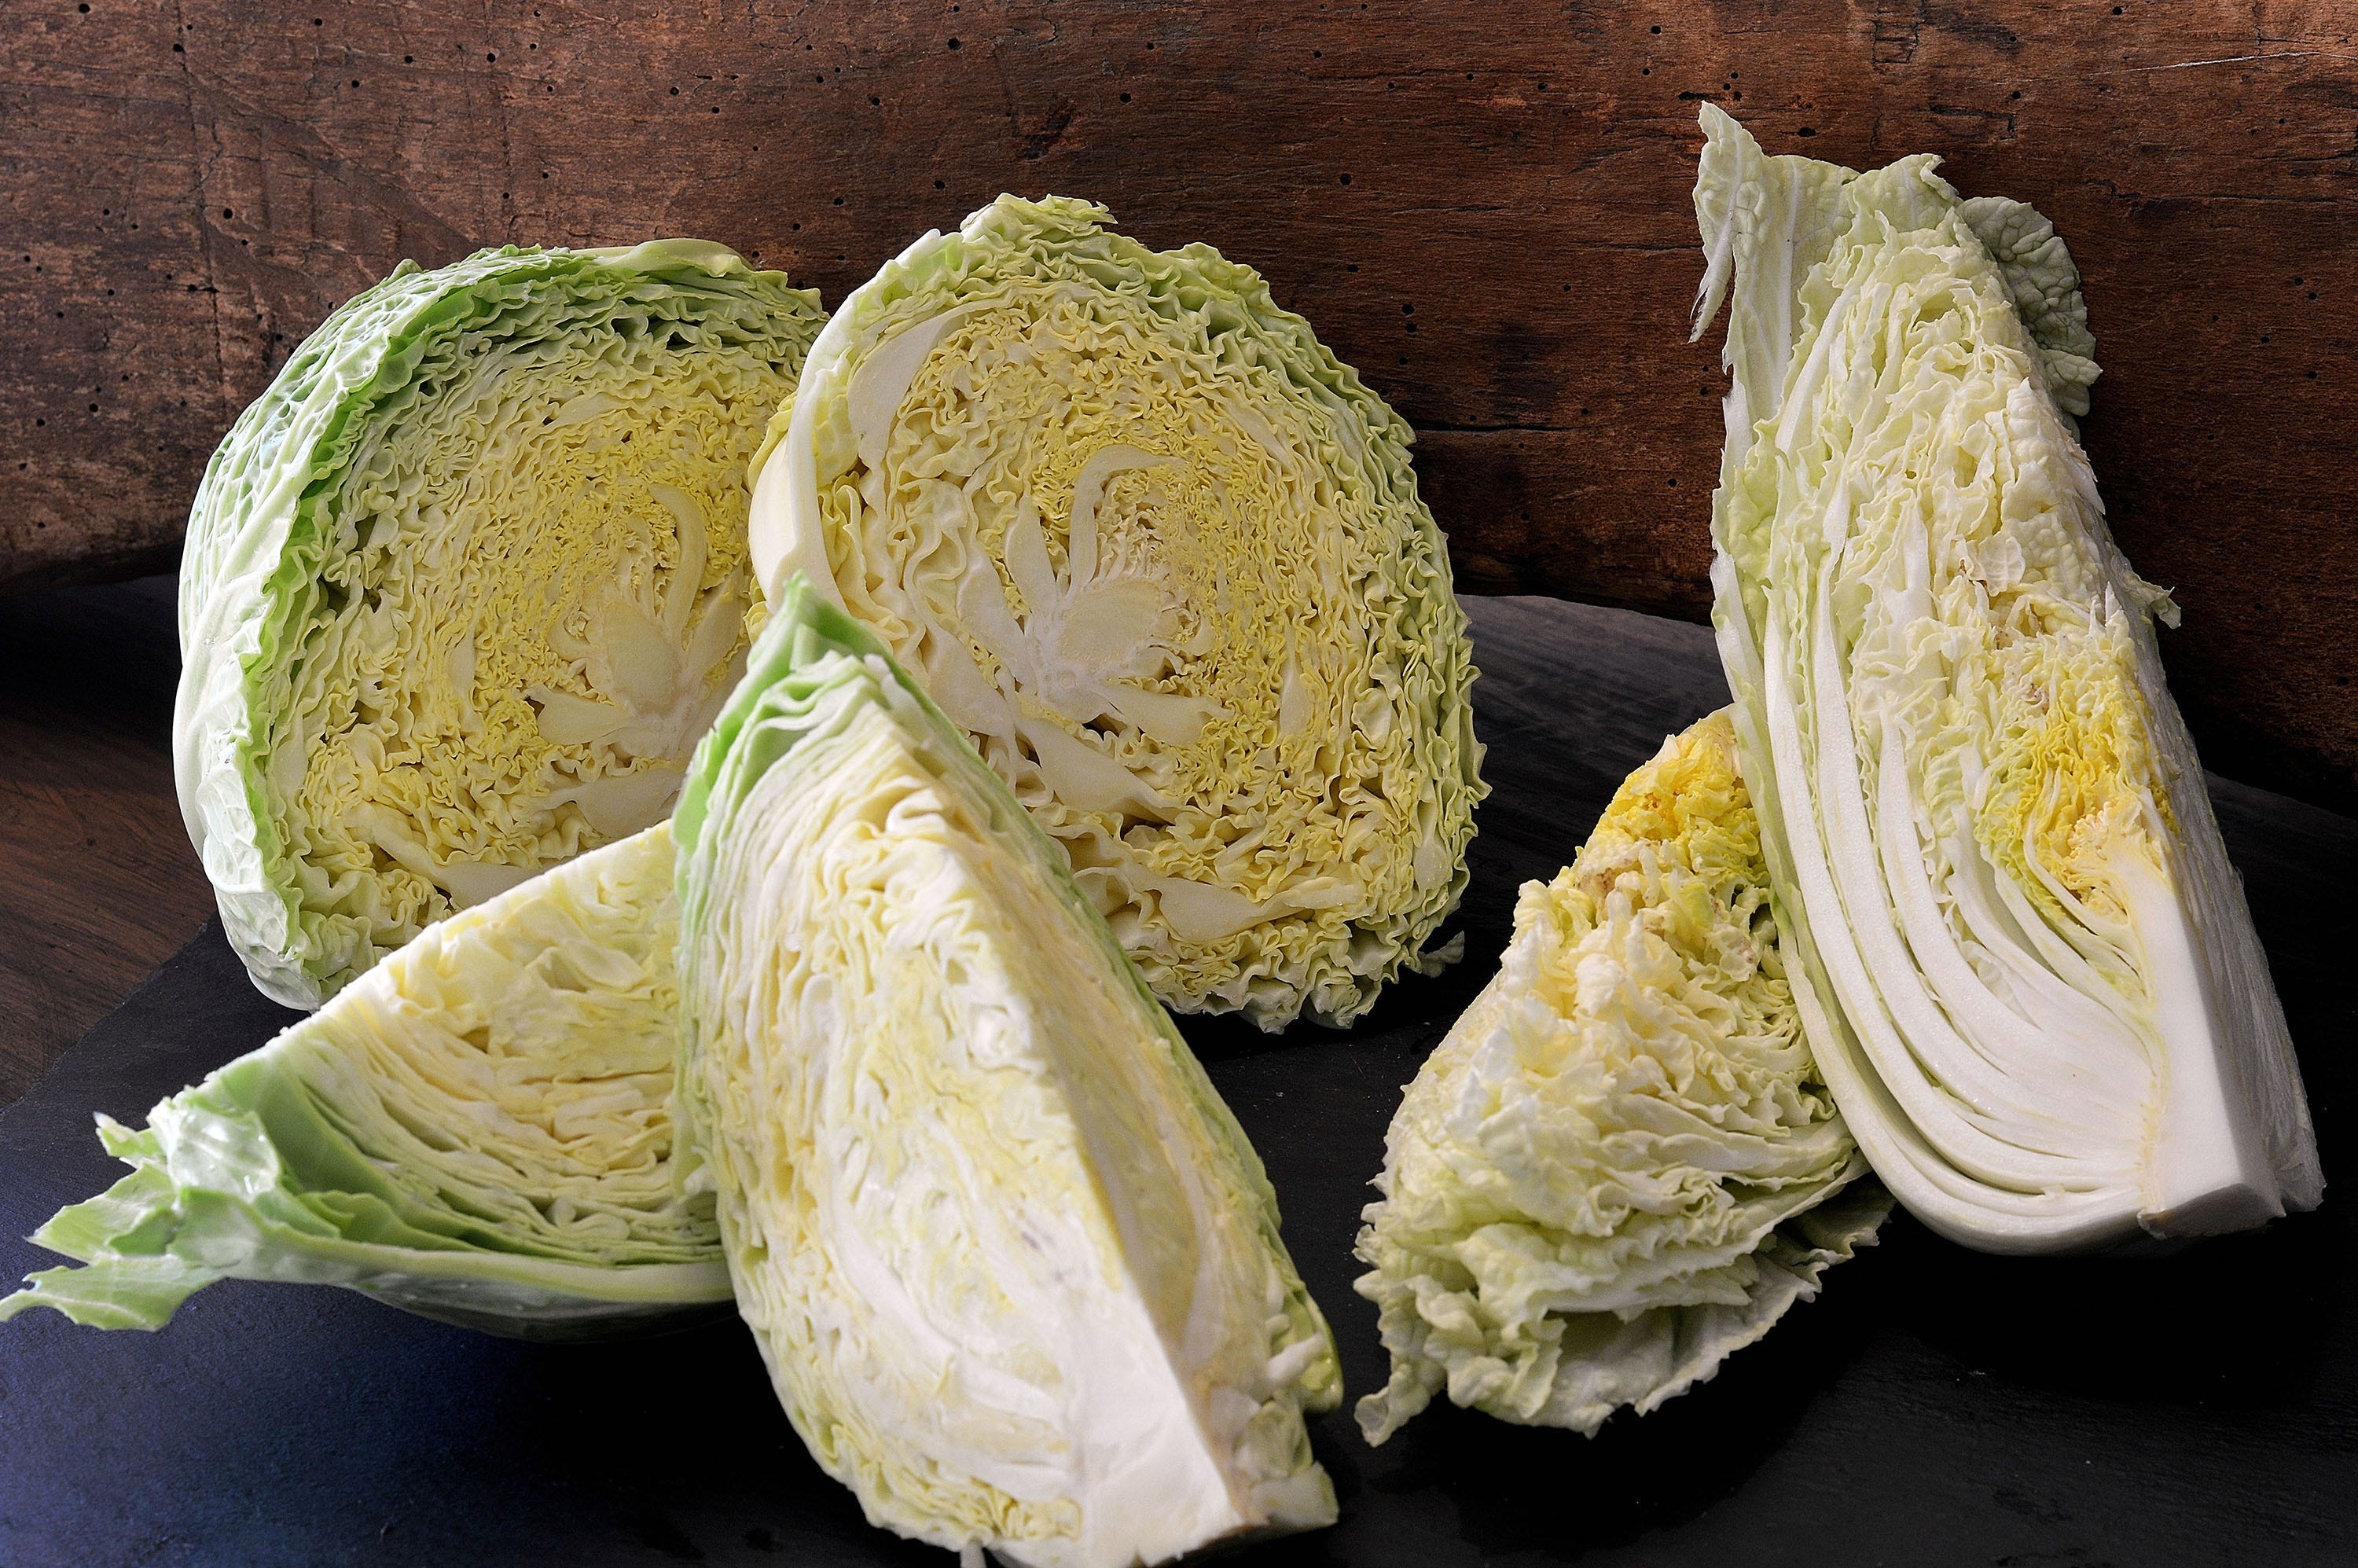 Cabbage Steps Into The Spotlight As A New Old Vegetable Darling